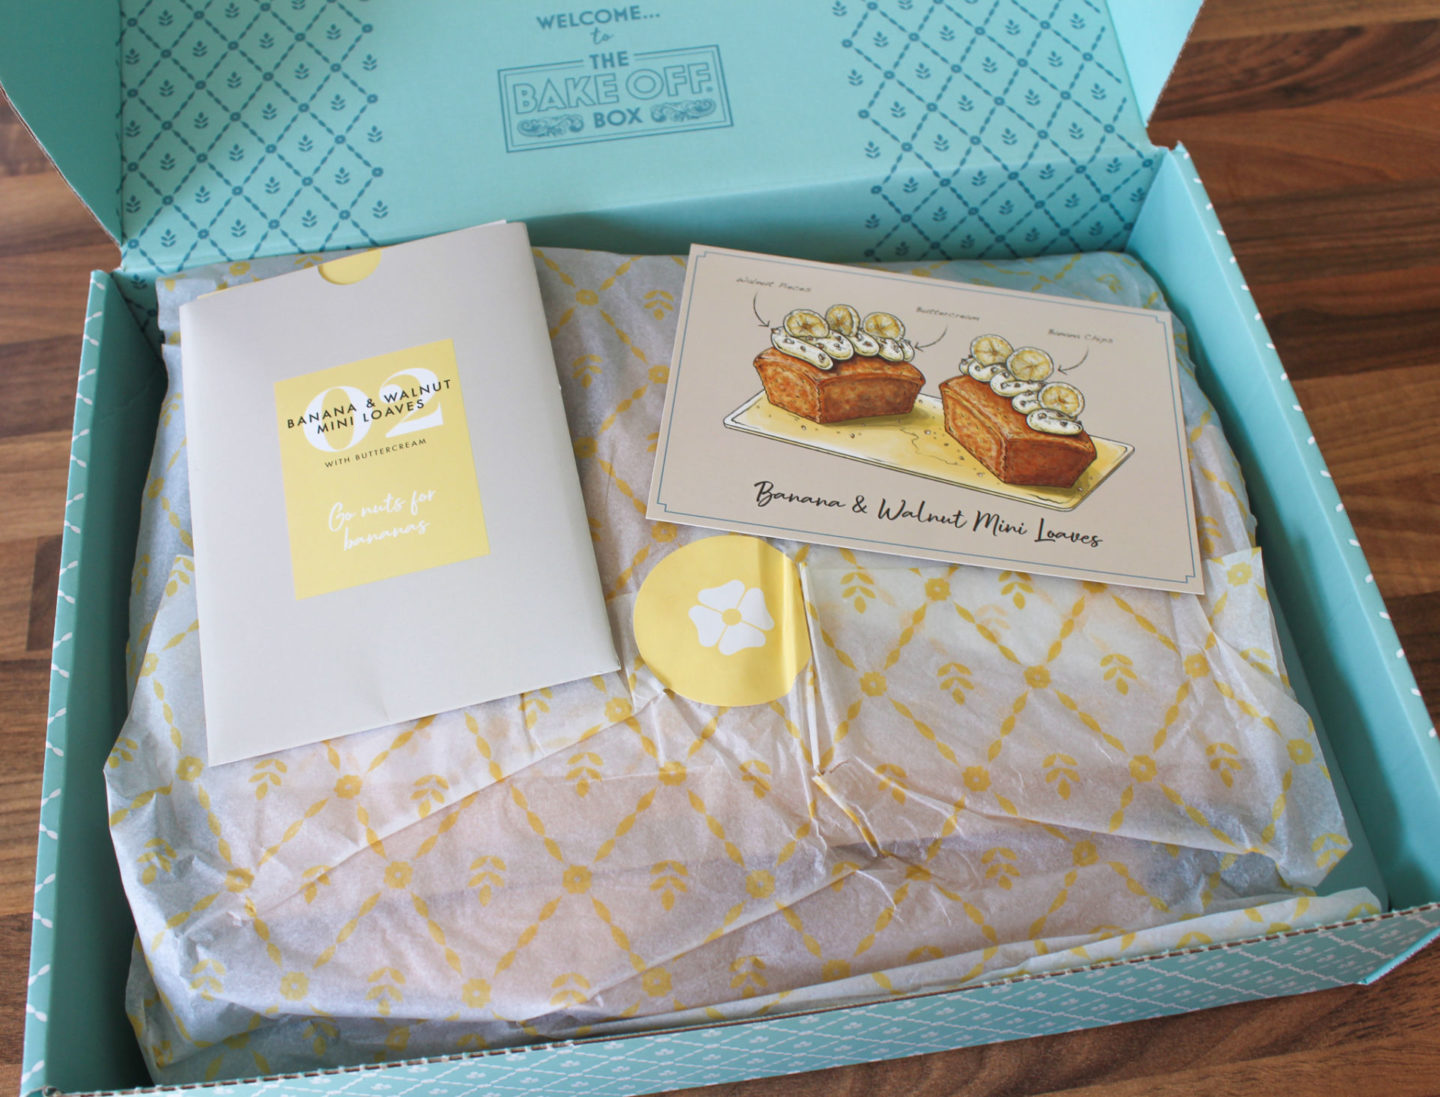 view inside the bake off box for banana and walnut mini loaves